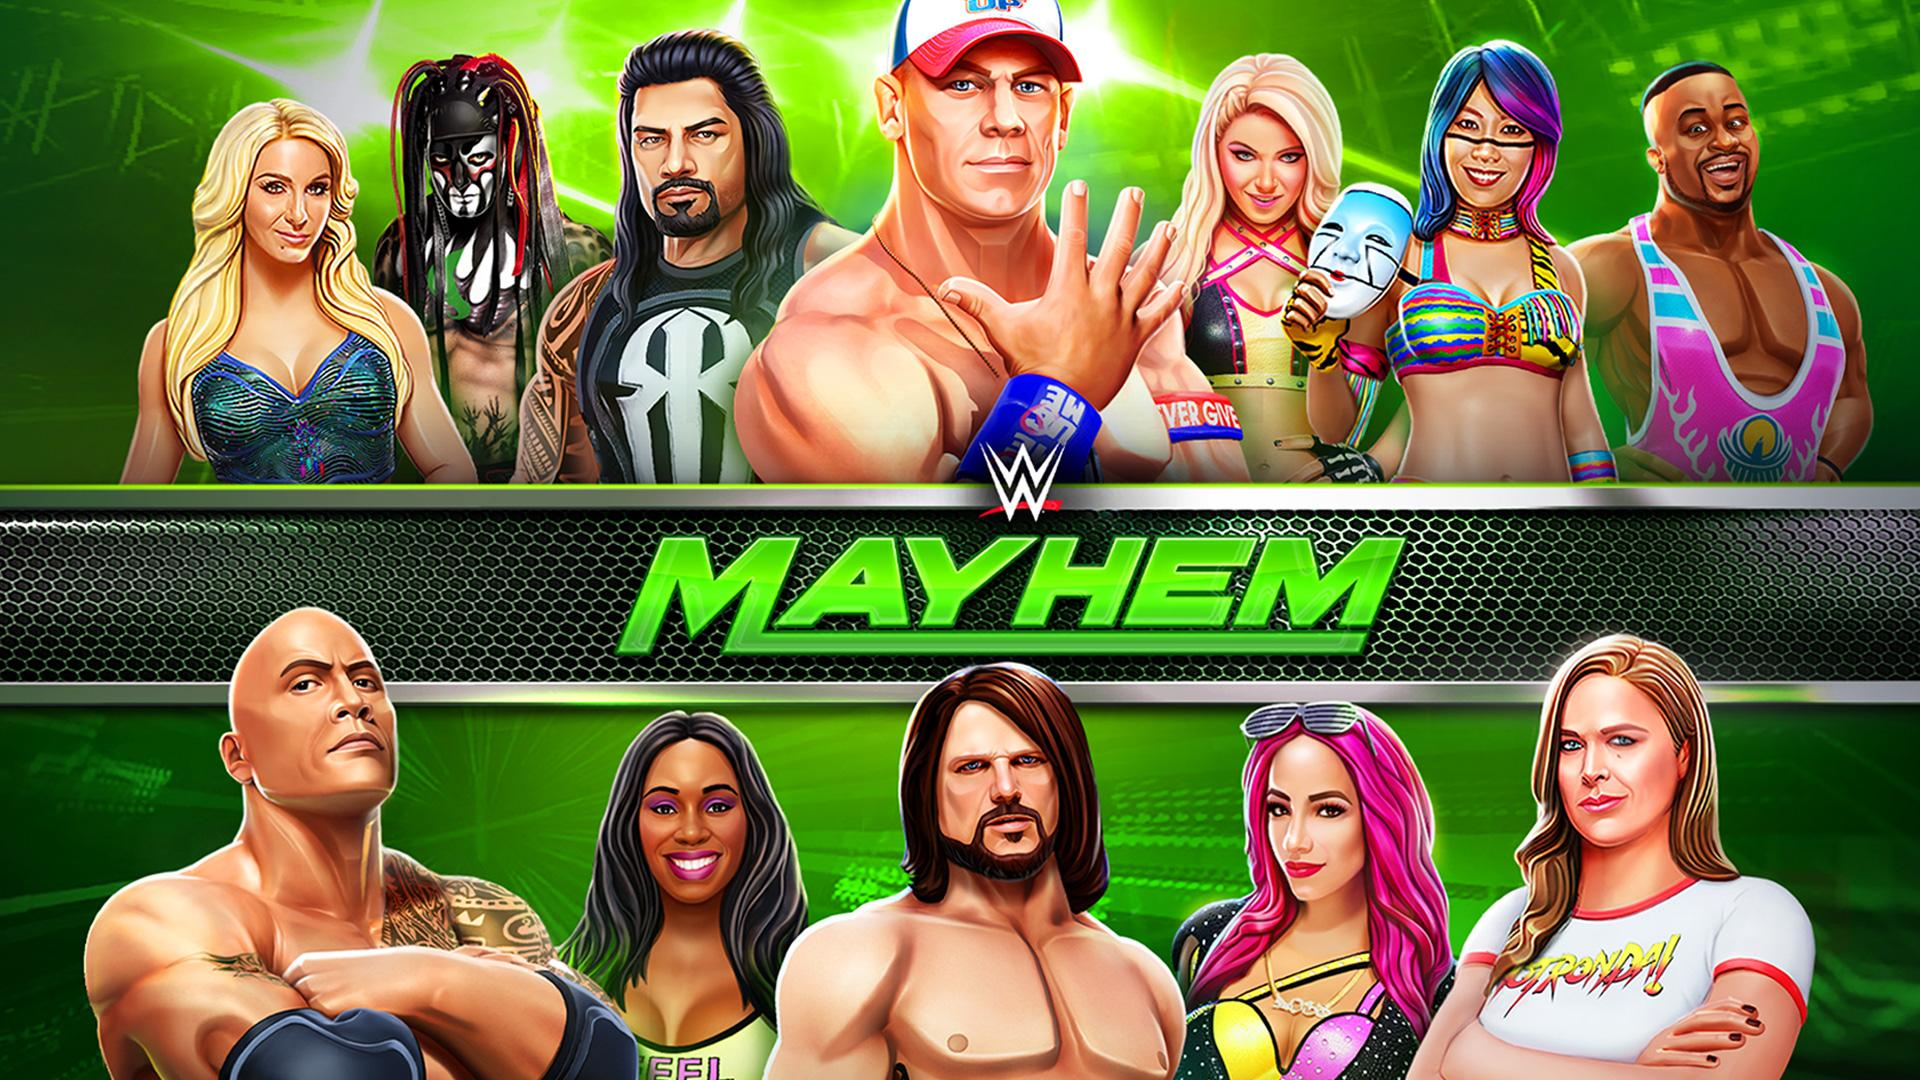 WWE Mayhem (MOD, Unlimited Gold, Cash) 1